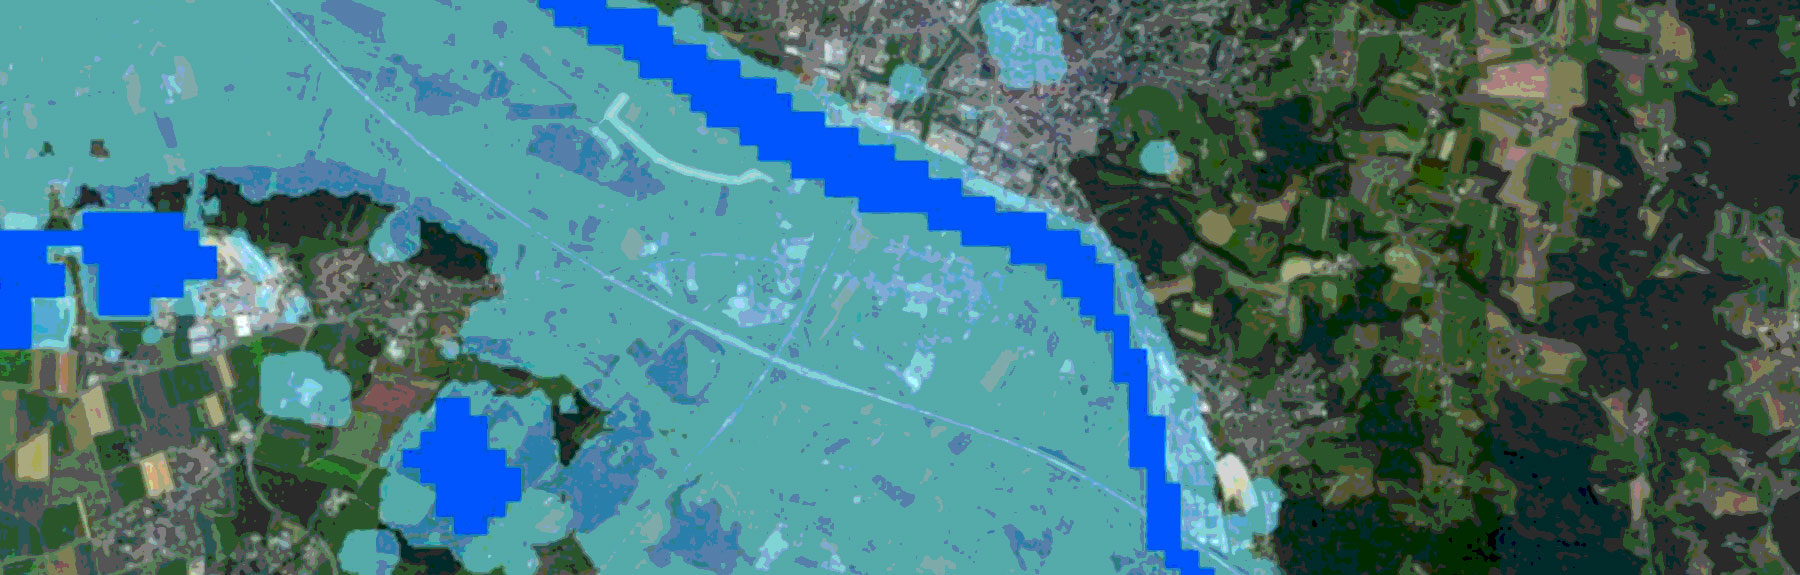 Mapping the 2013 Floods in Central Europe